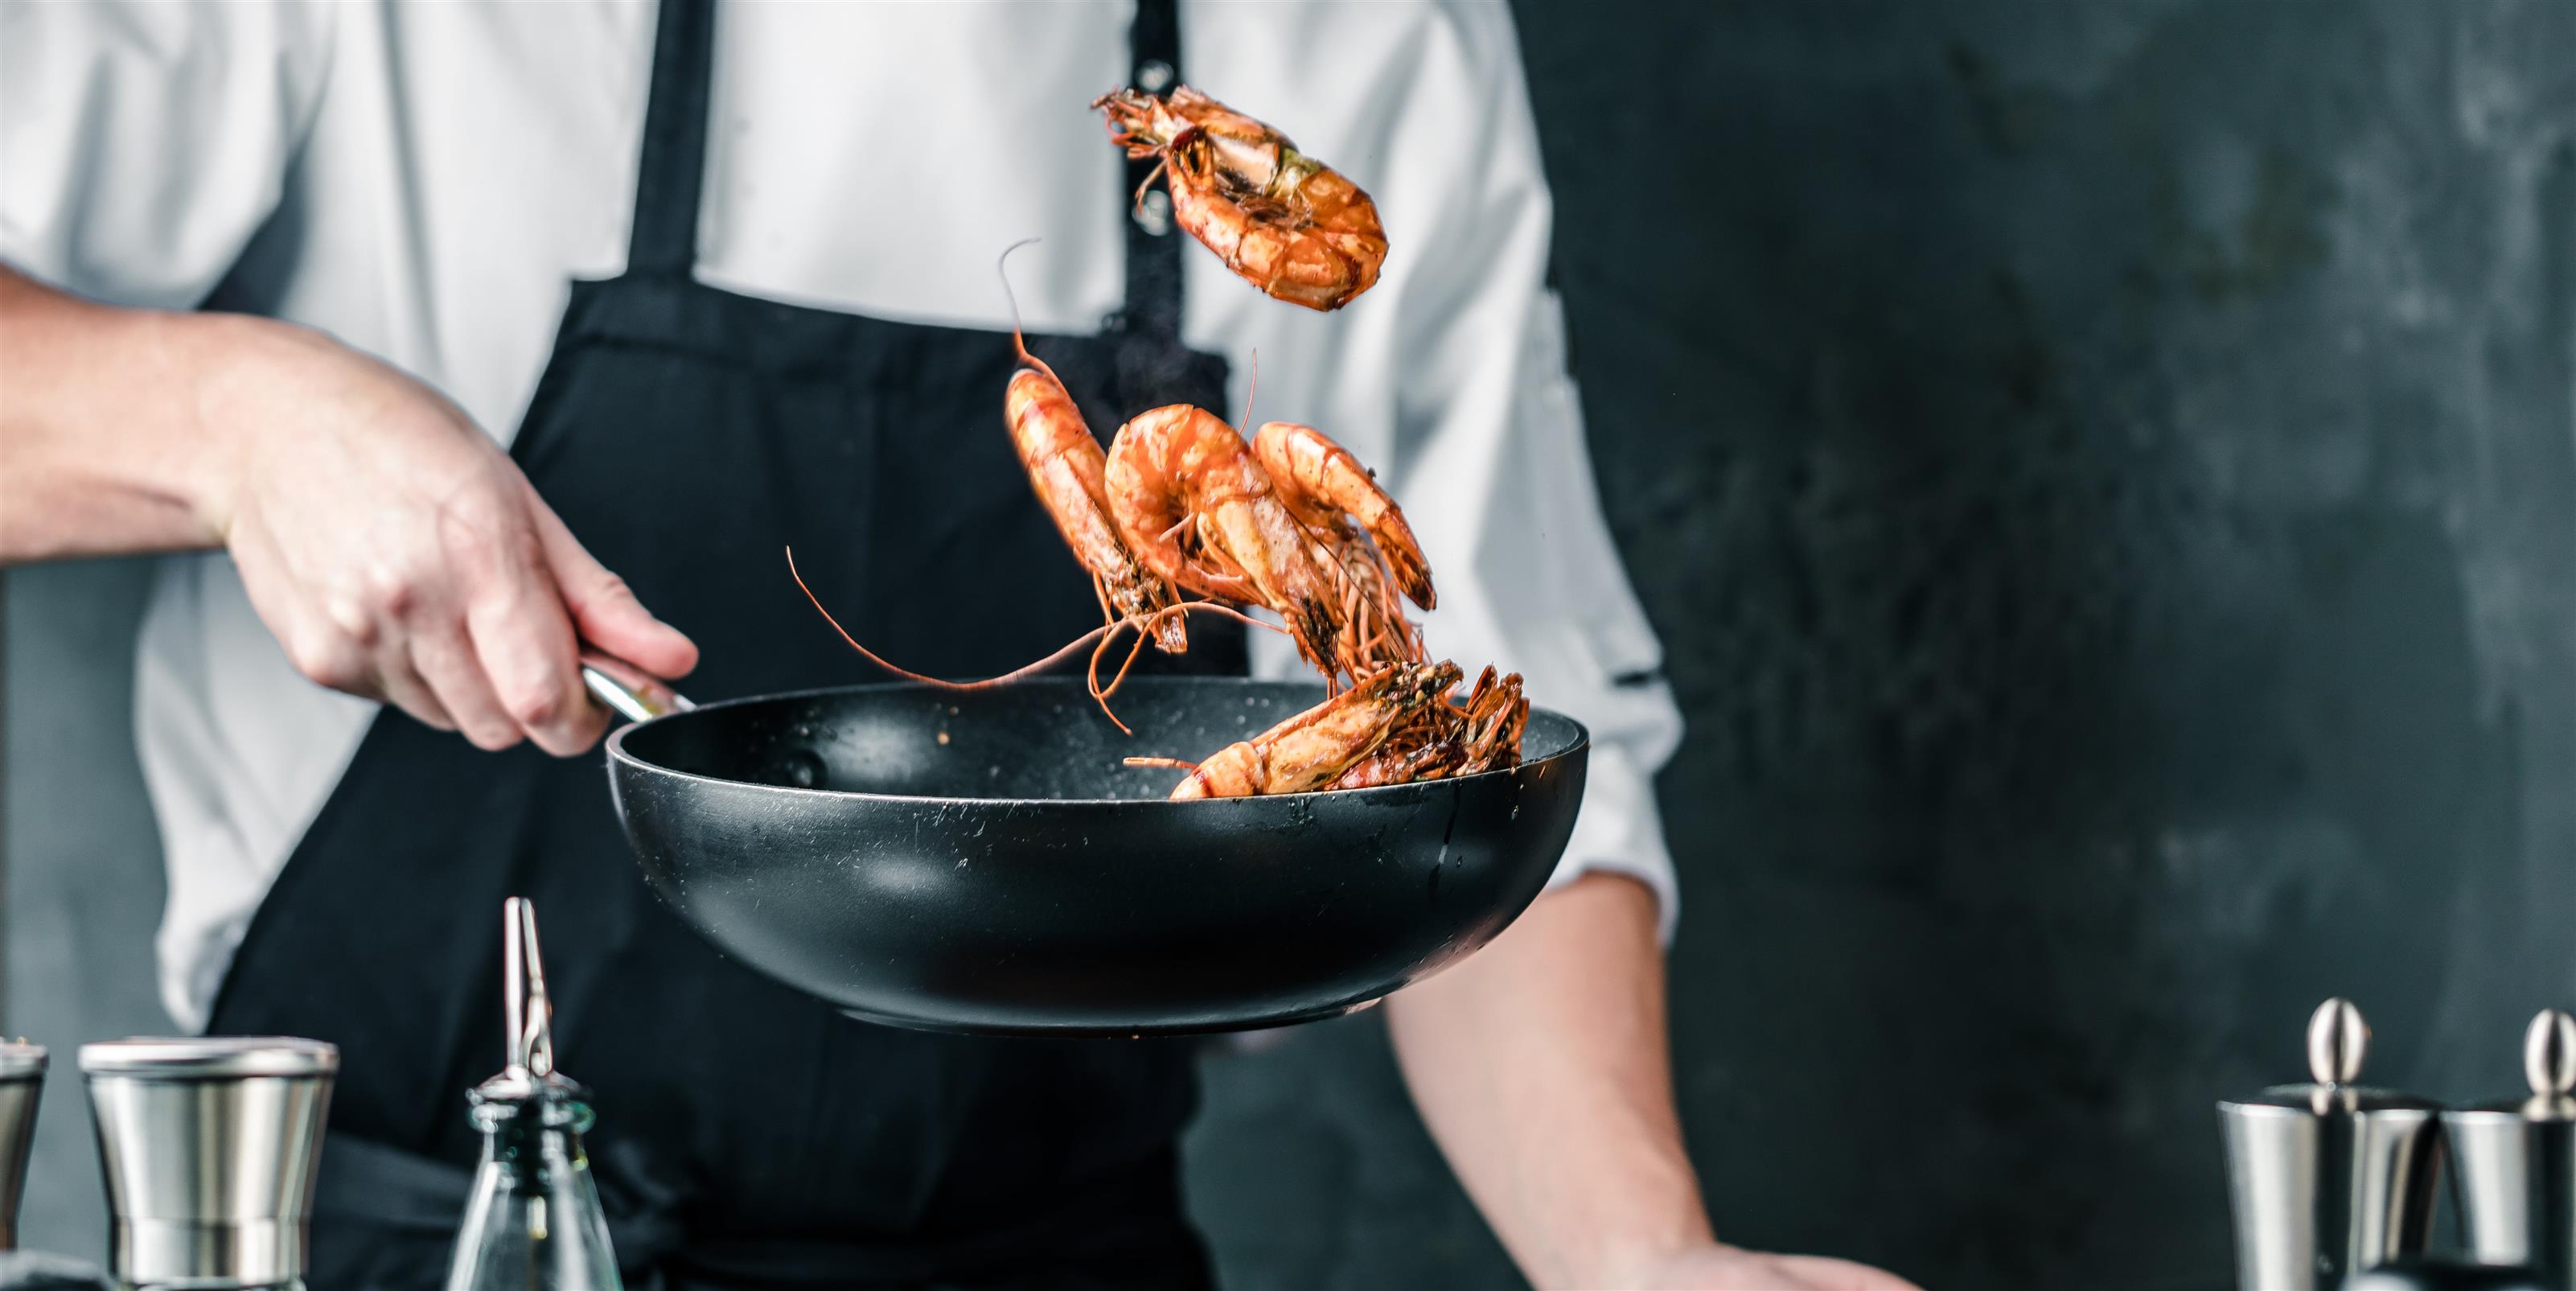 chef tossing shrimp in a pan